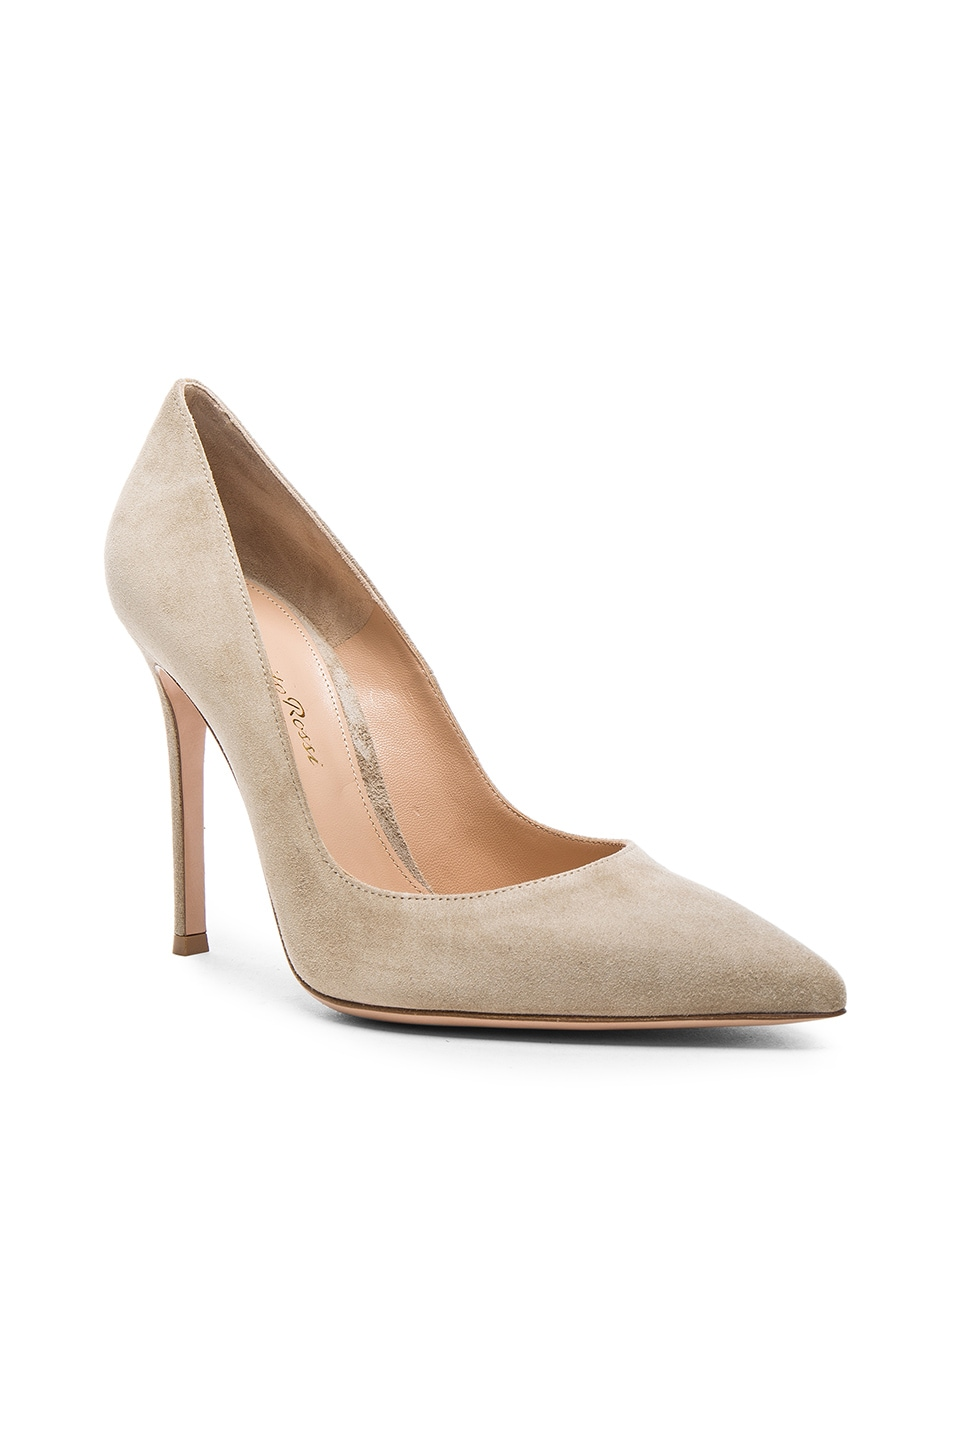 Image 2 of Gianvito Rossi Suede Gianvito Heels in Camel